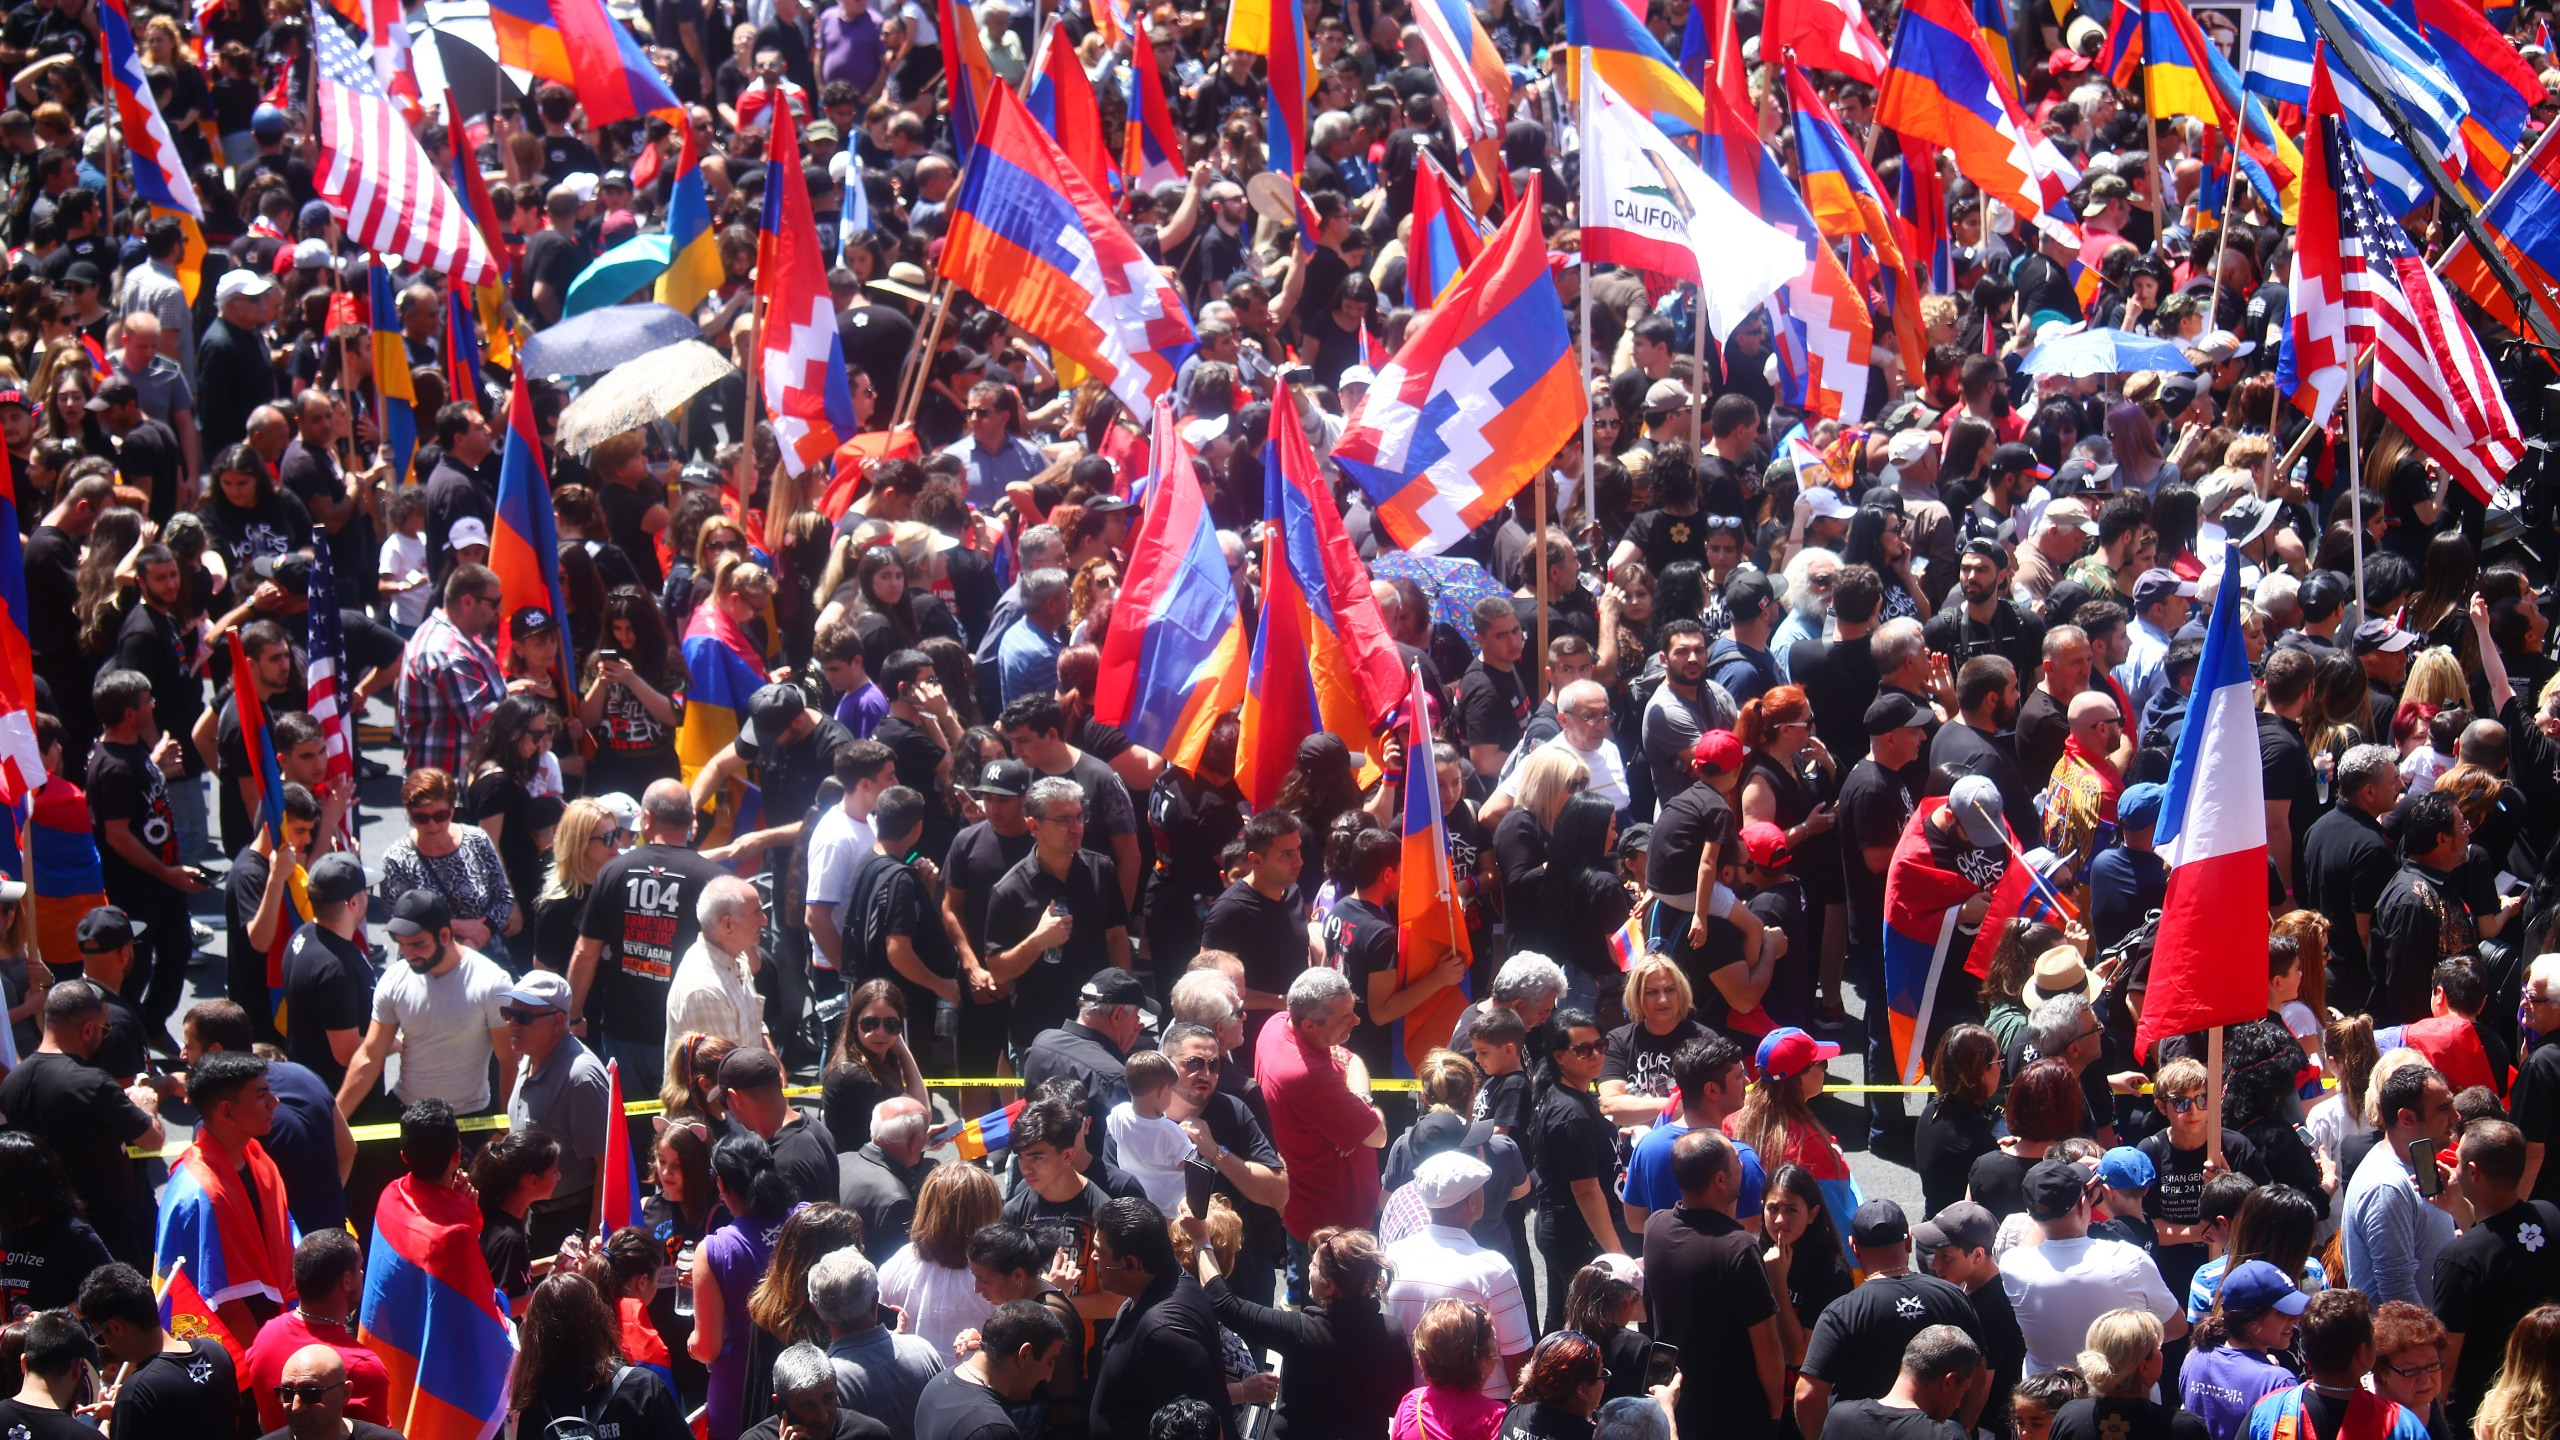 Armenians and supporters gather during a march and rally commemorating the 104th anniversary of the Armenian genocide on April 24, 2019, in Hollywood, California. (Mario Tama/Getty Images)